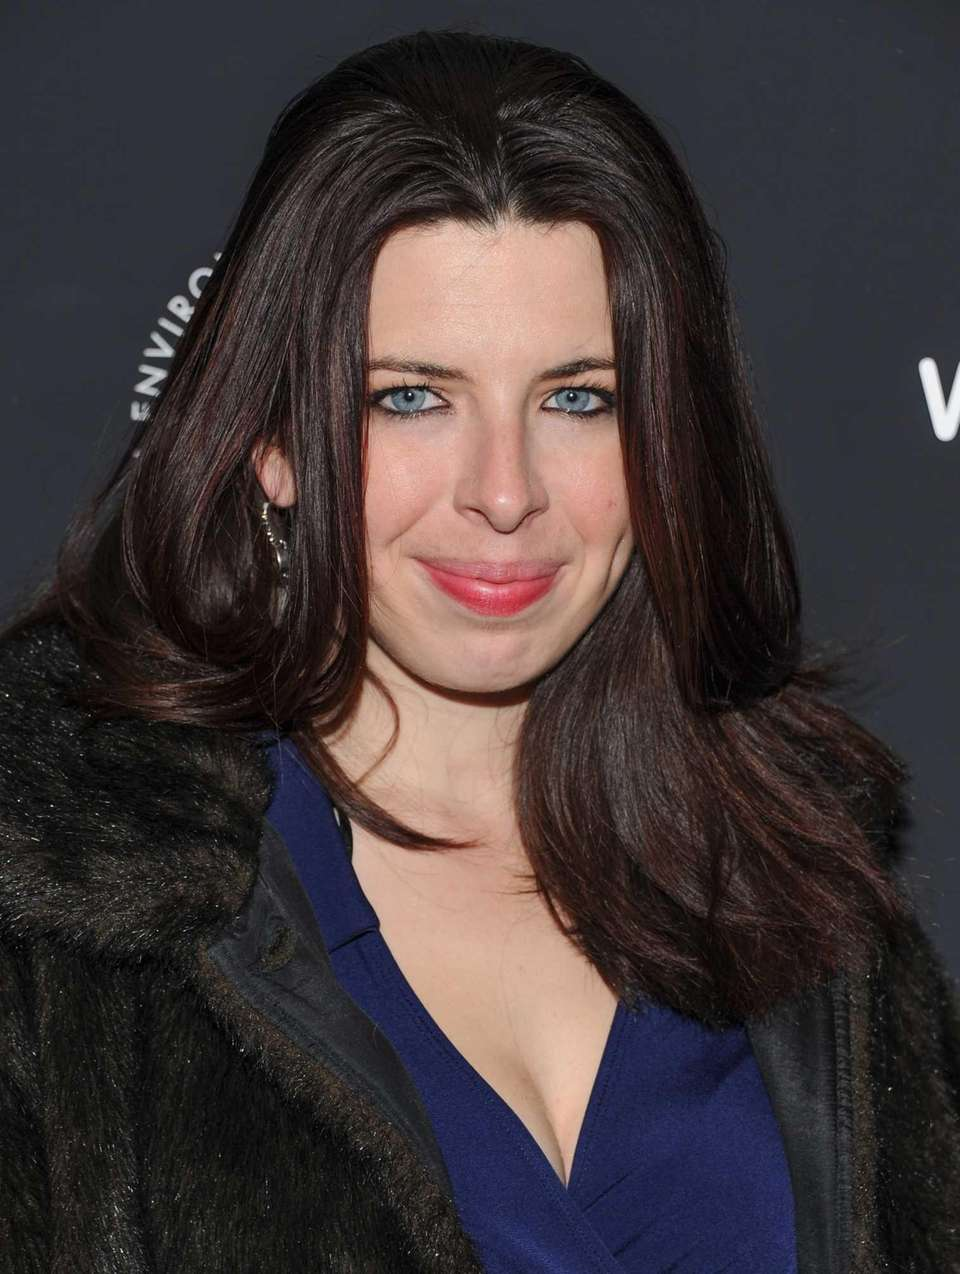 Actress Heather Matarazzo, best known for playing characters